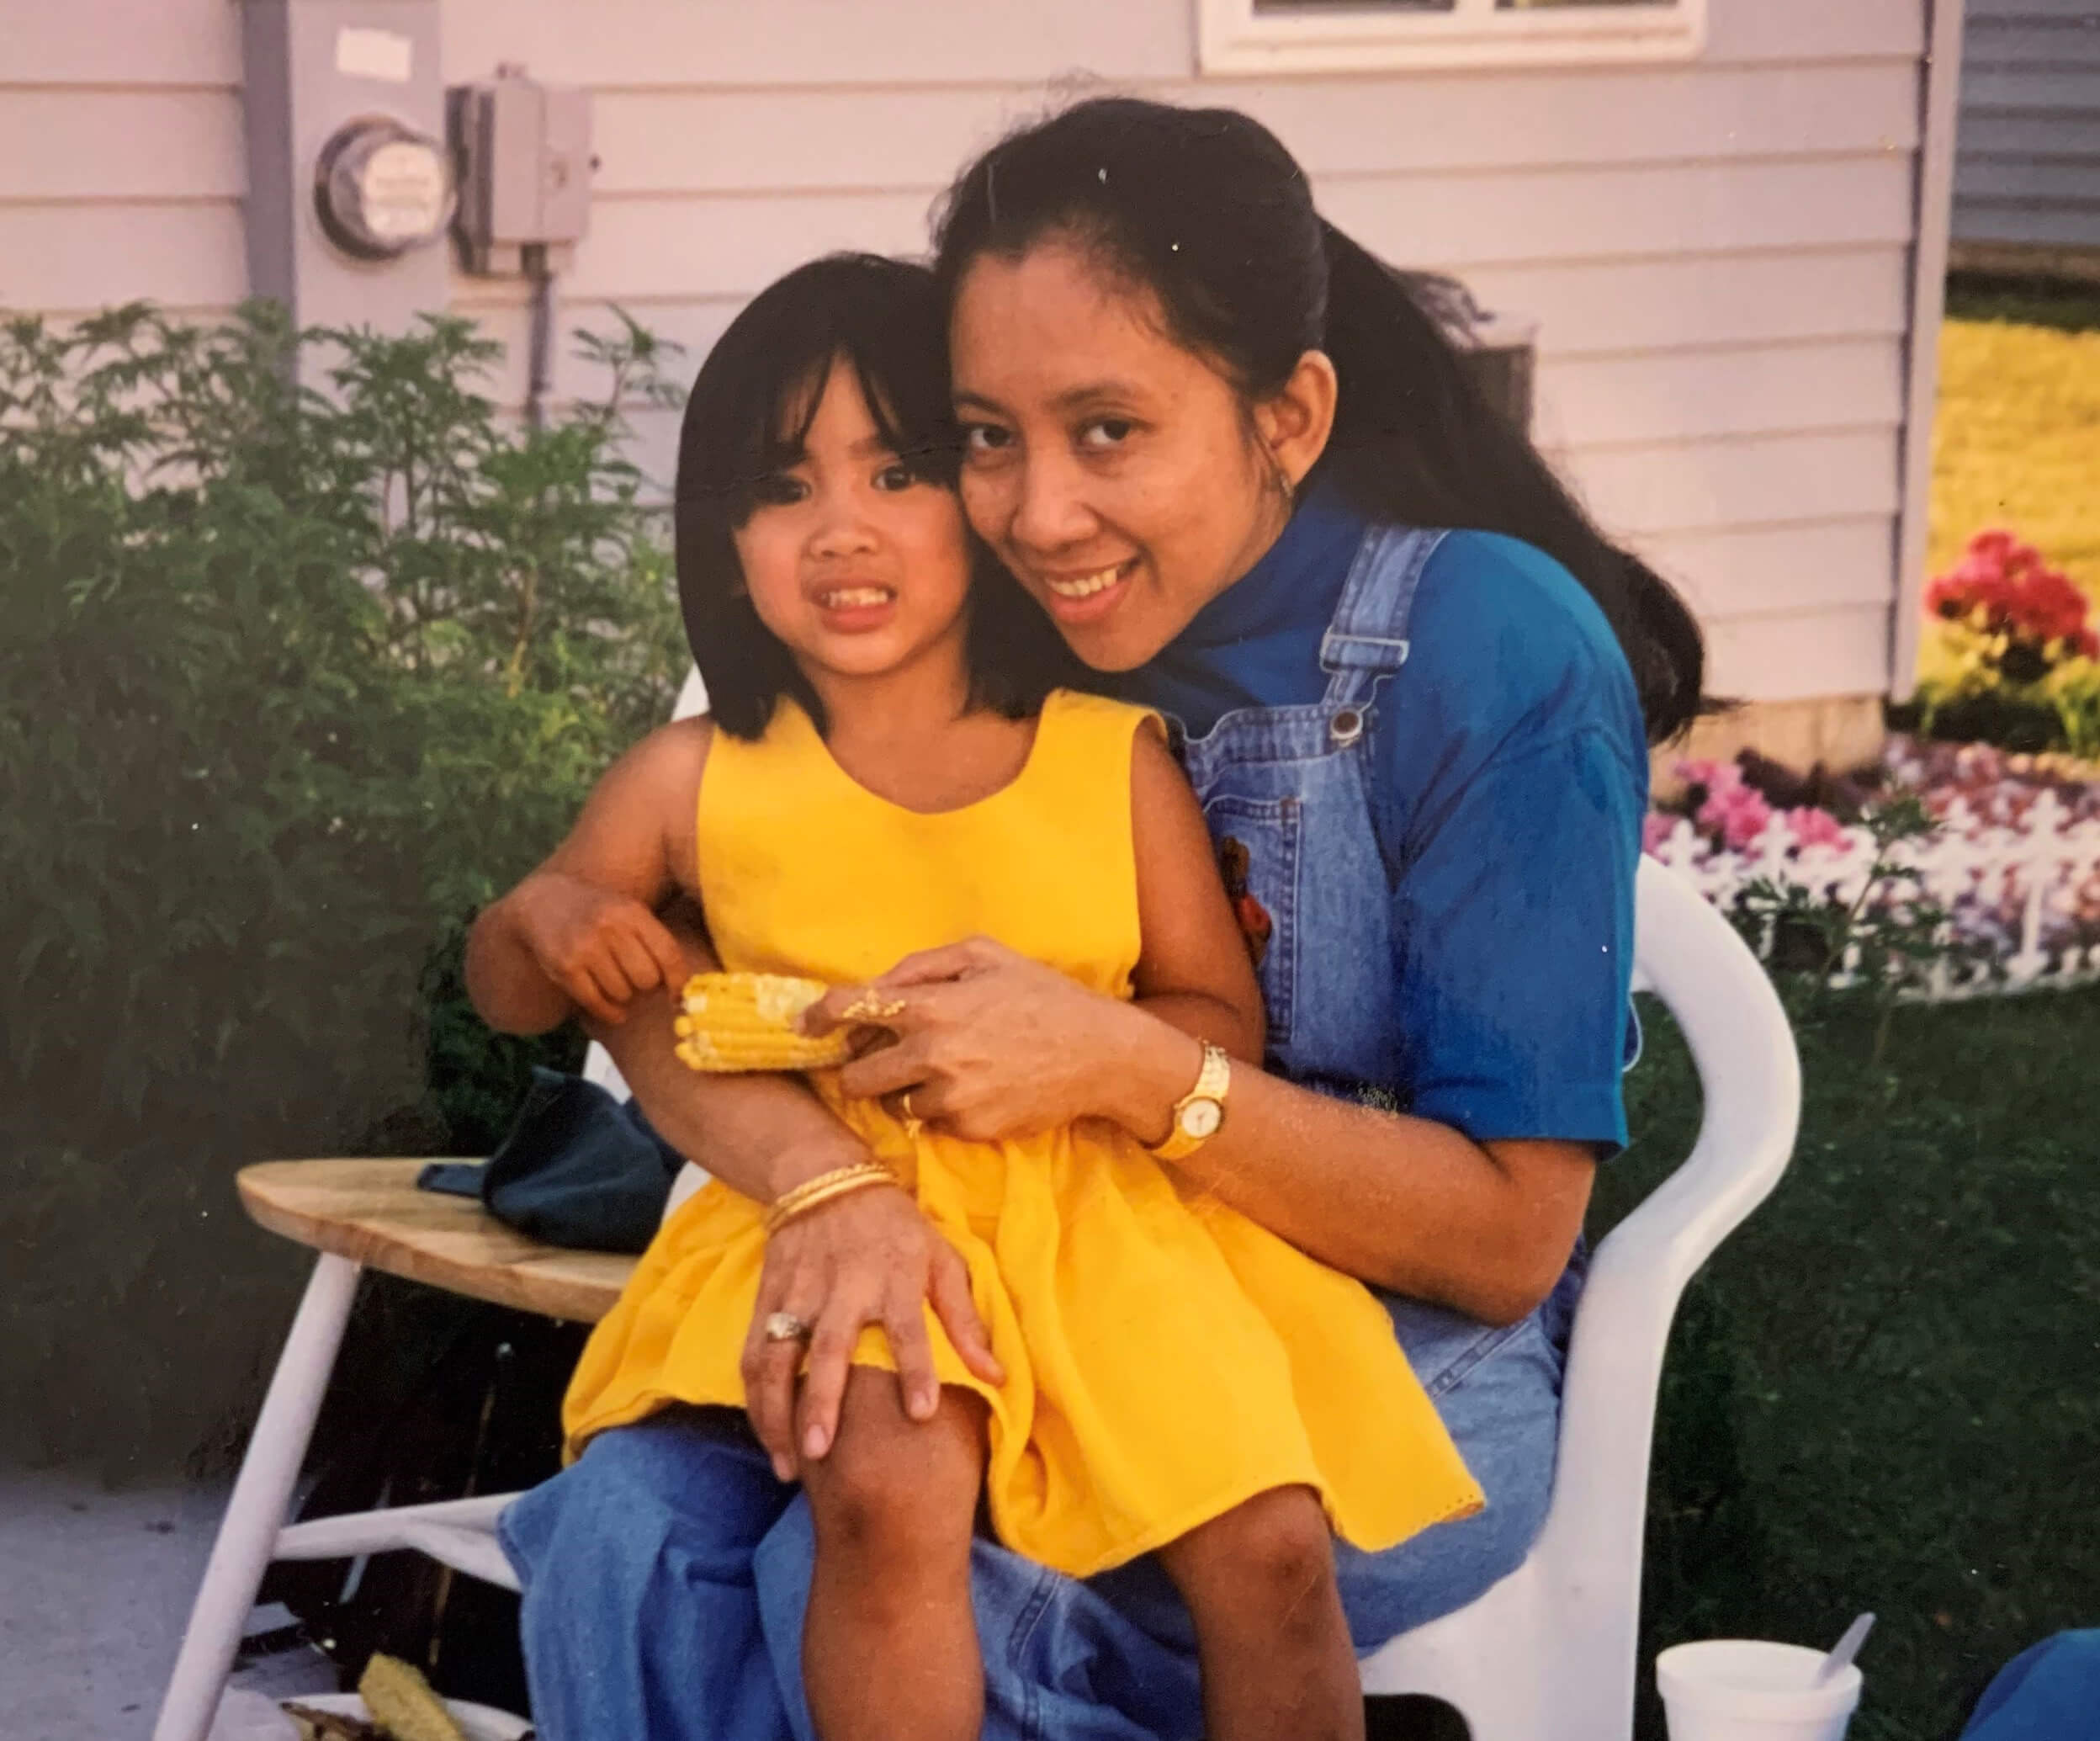 Photograph of a mother and young daughter sitting cuddling on a chair. The mother is on the right, the little girl on the left. The girl is wearing a yellow dress. They look happy.